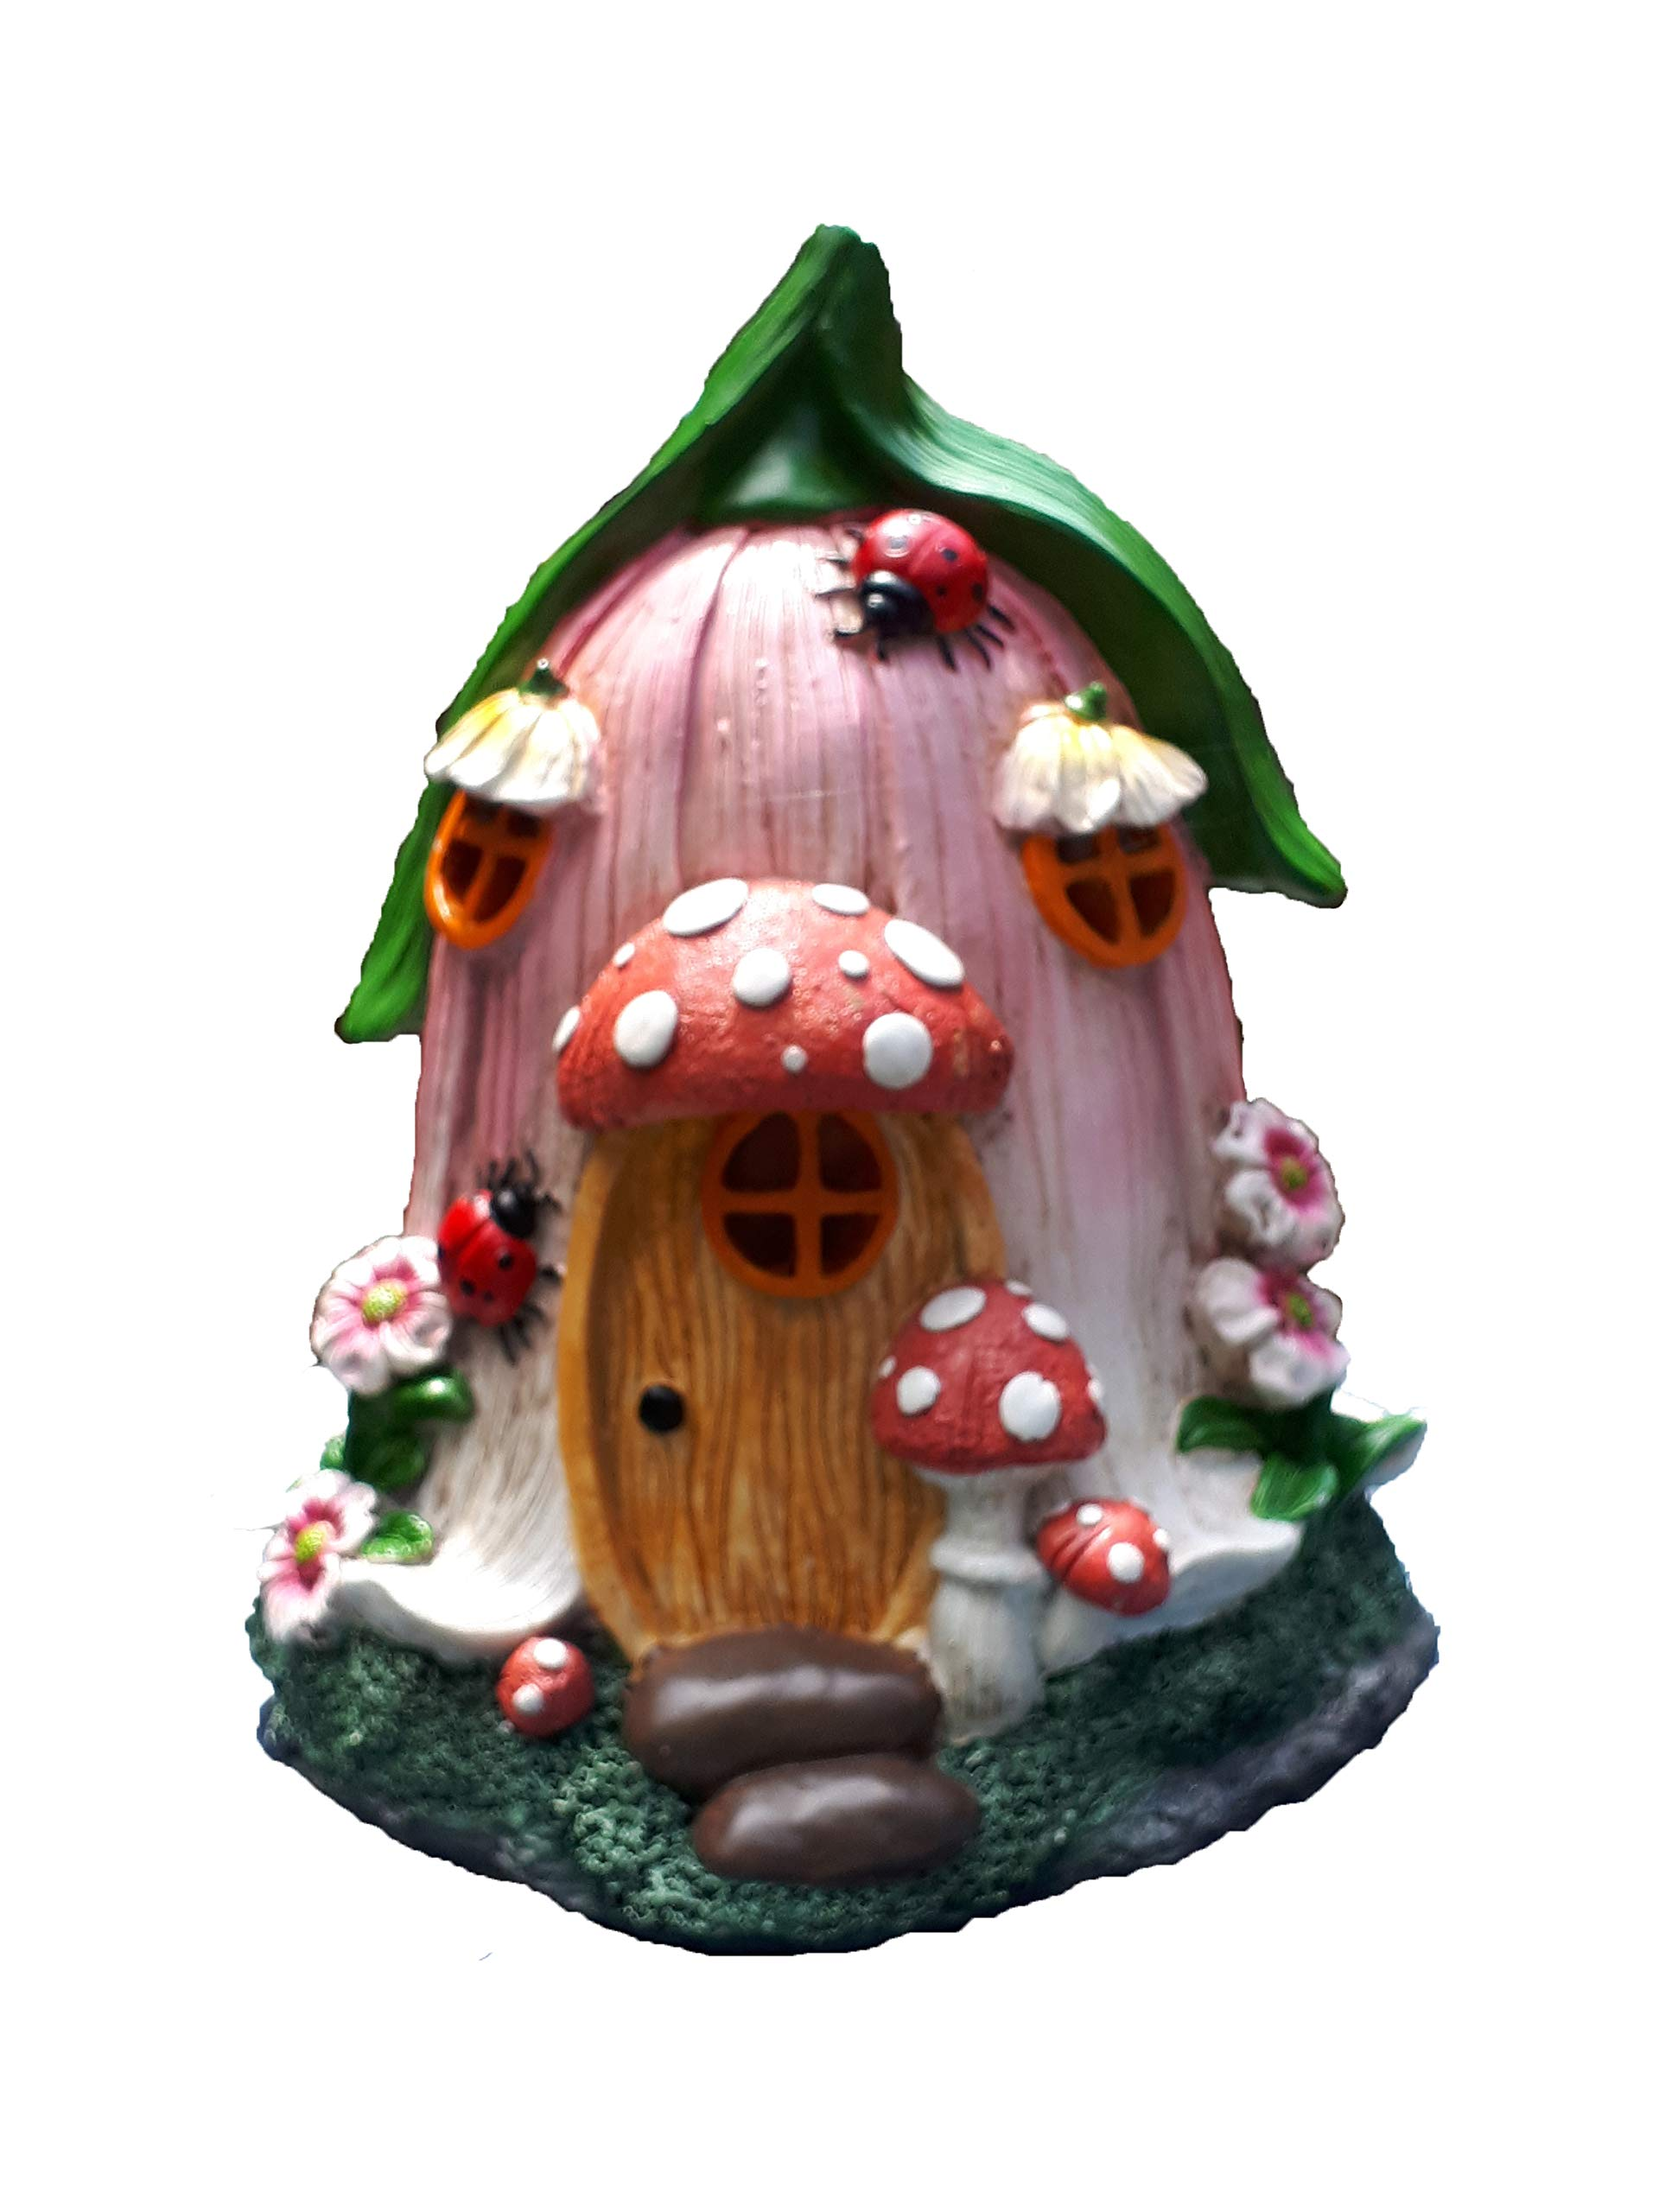 Mystic Garden Solar Resin Fairy Garden House. Tulip Design. Lights up at Night; Indoor or Outdoor Fairy Home for Flower Gardens, planters, Window Boxes, Terrarium or Yard.